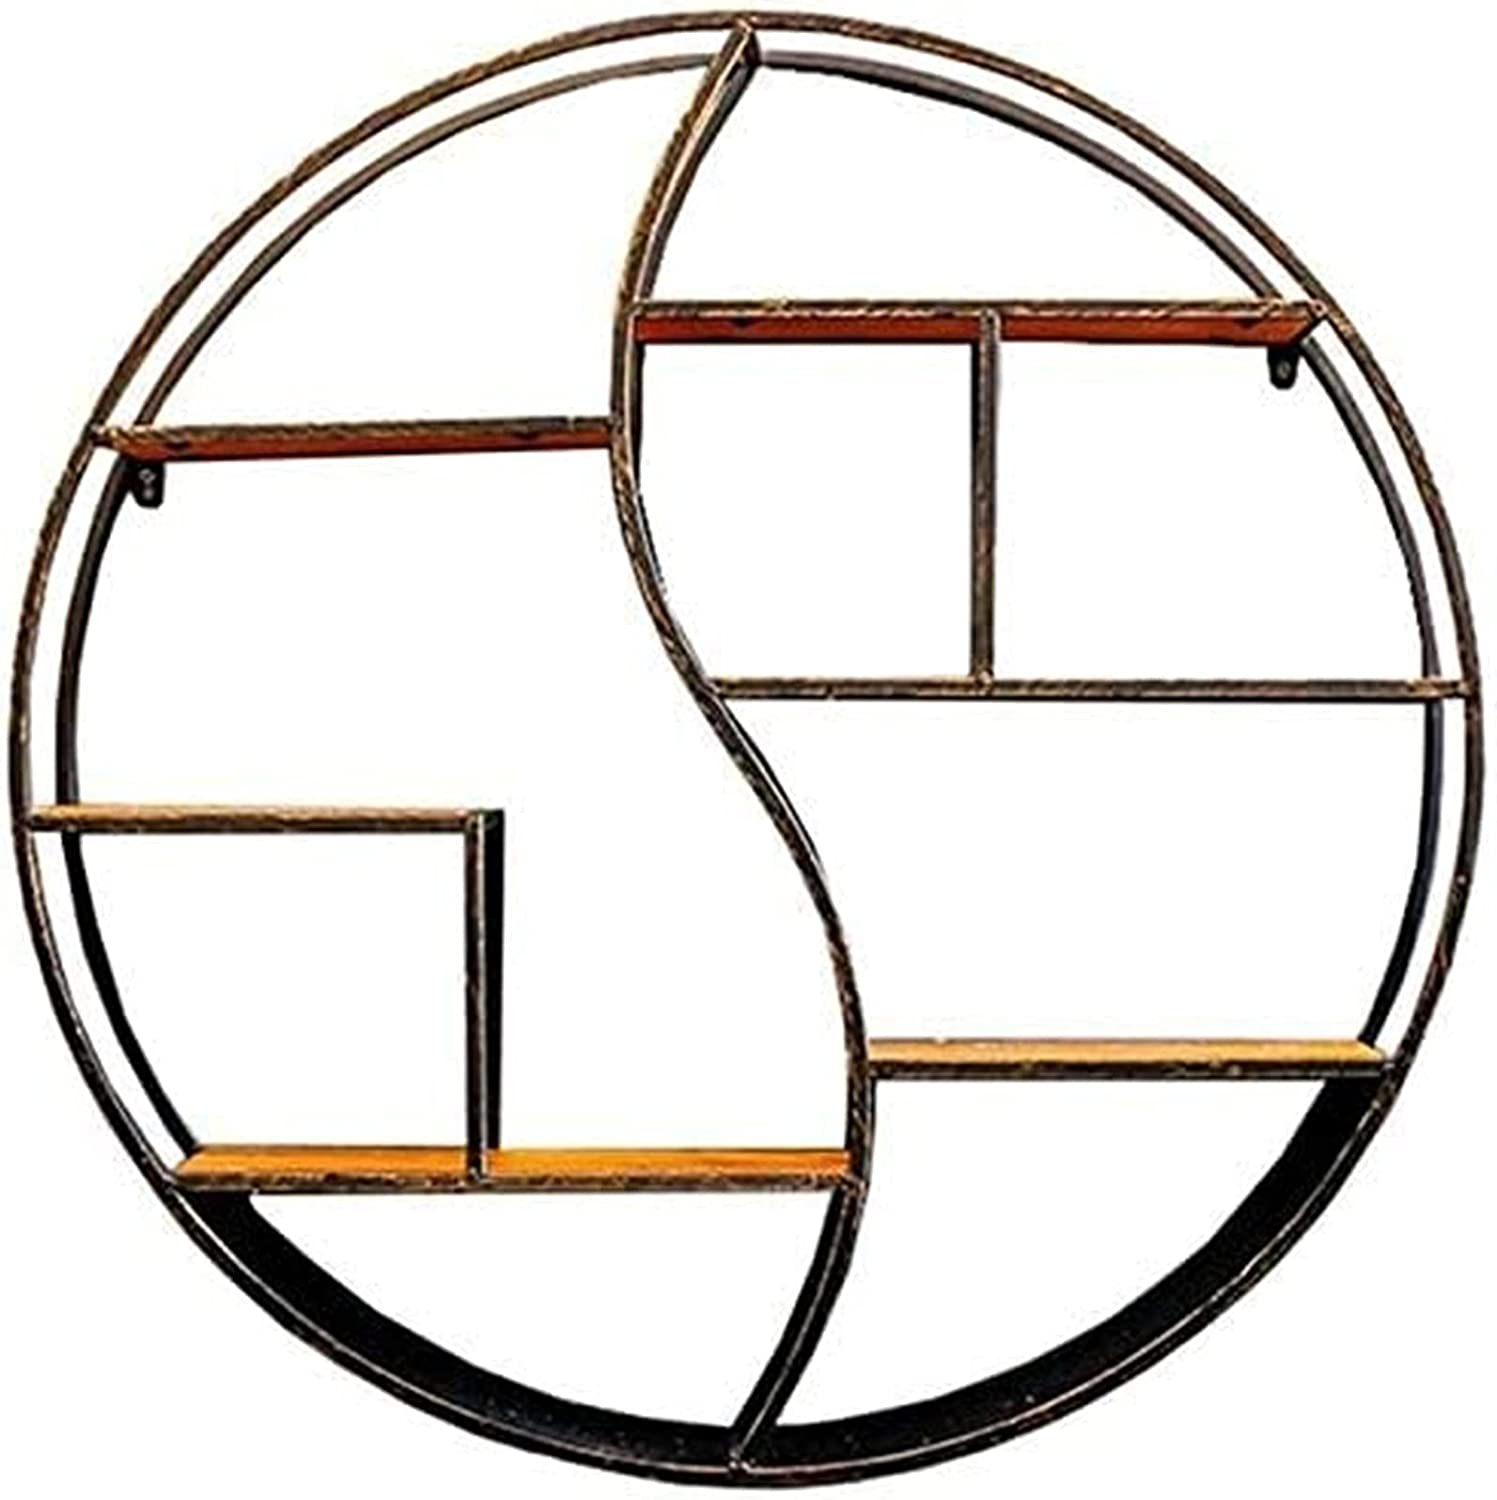 ZSPSHOP Round Shelf Wood National products Iron Decorations Hanging Storage C excellence Rack